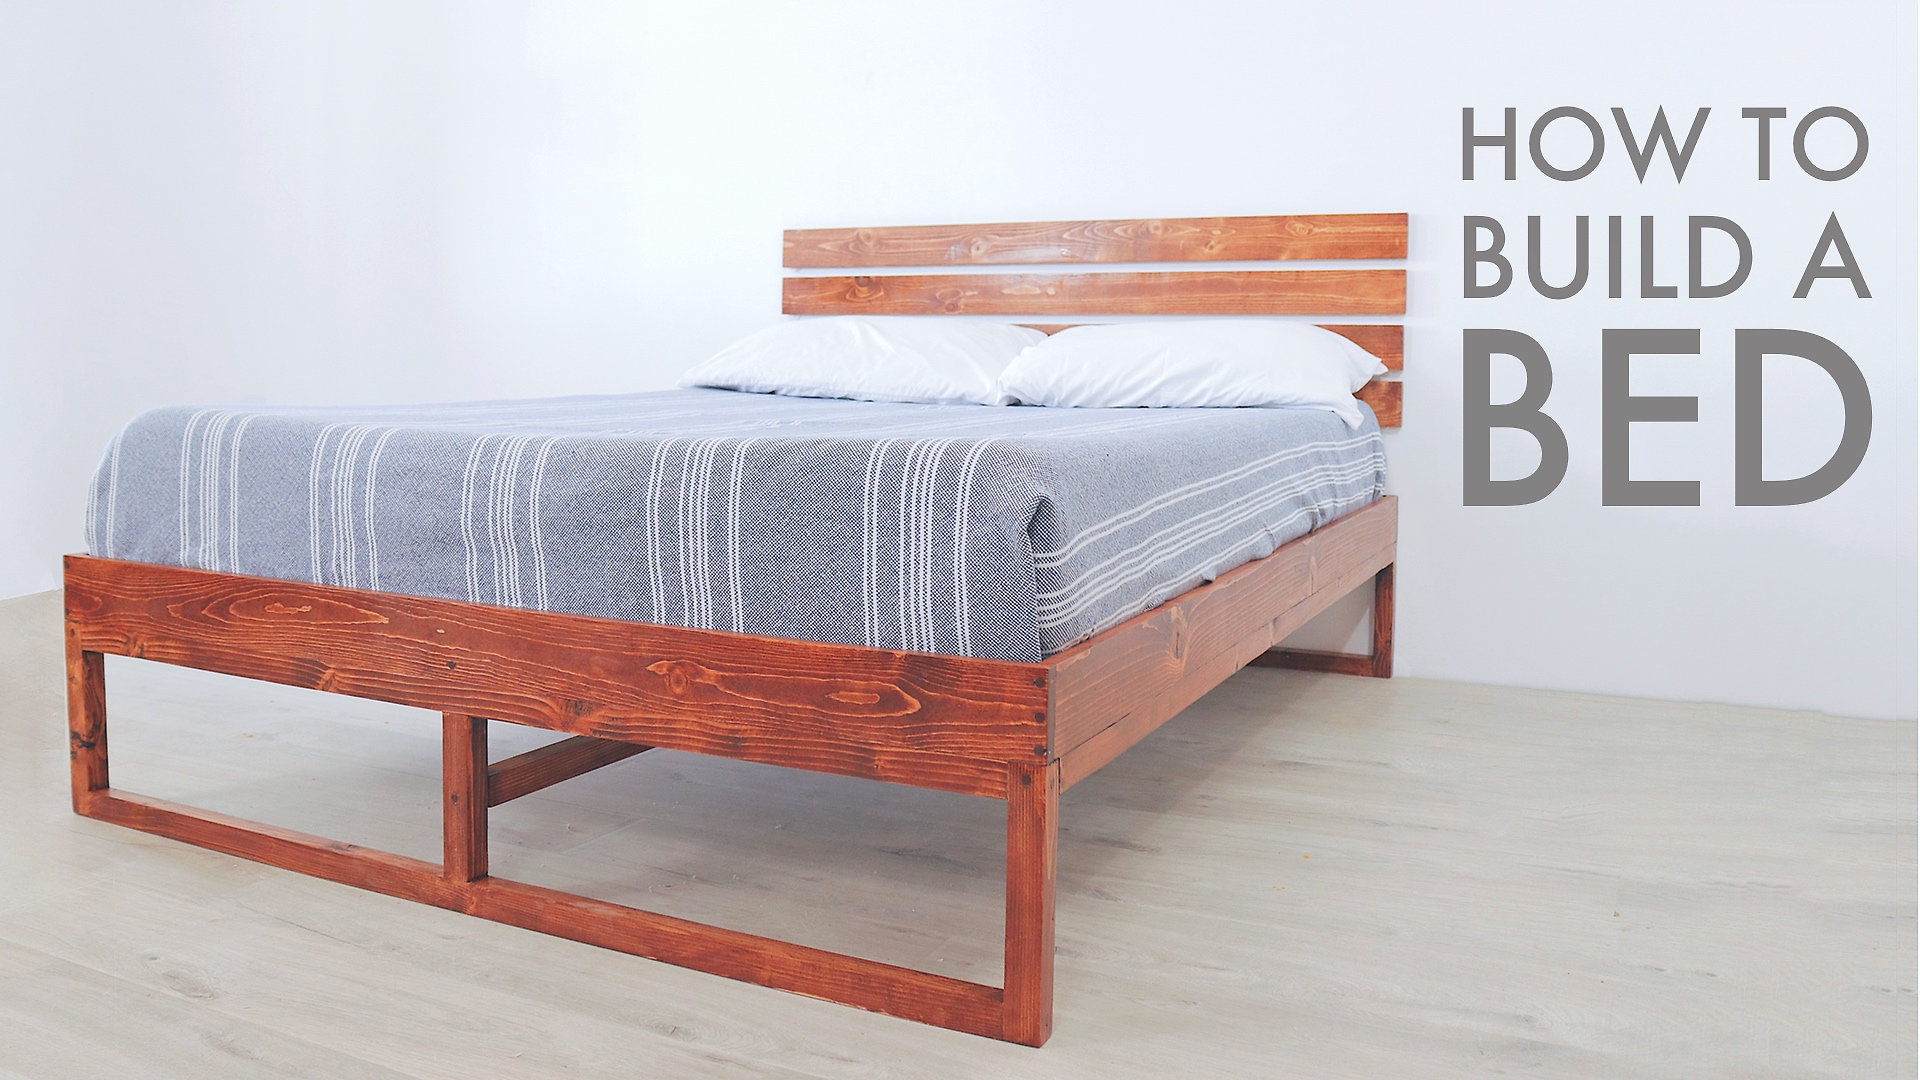 A DIY Full Sized Bed built with Limited Tools by Mike Montgomery | Modern Builds